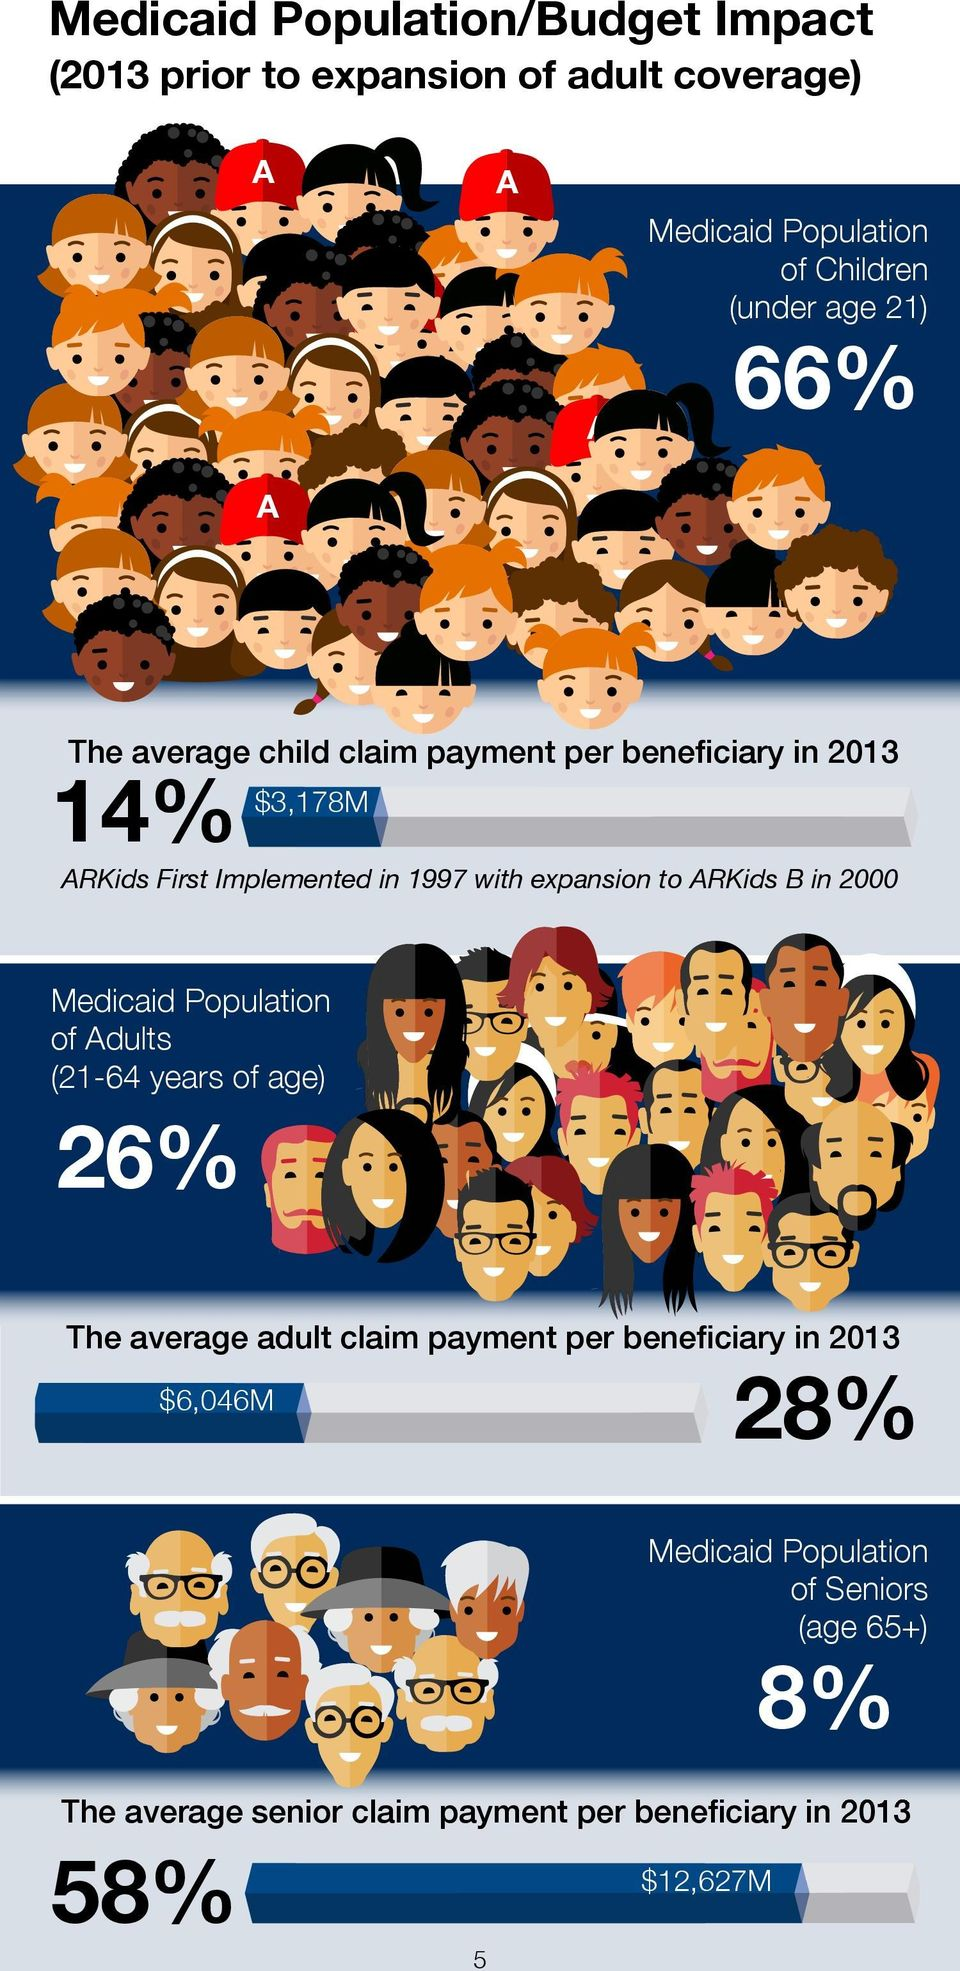 RKids B in 2000 Medicaid Population of dults (21-64 years of age) 26% The average adult claim payment per beneficiary in